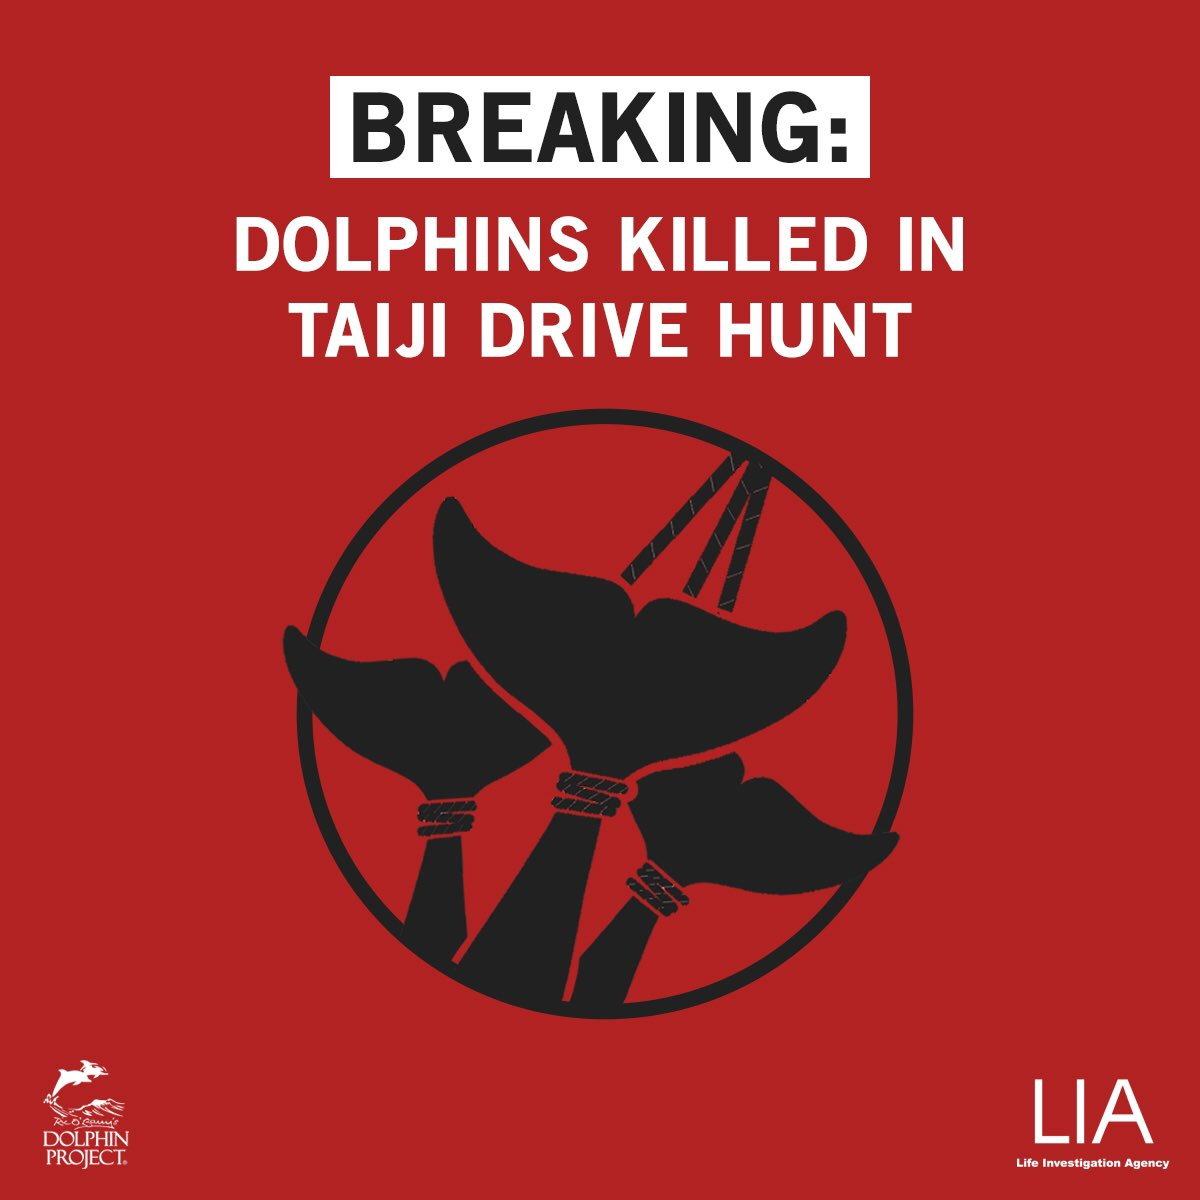 Taiji: The dolphin hunters have slaughtered a pod of Risso's Dolphins. We will update with a count. September 27, 2020 11:30am Coverage in collaboration with #LifeInvestigationAgency and #DolphinProject https://t.co/ZiqNXxZ8Jb